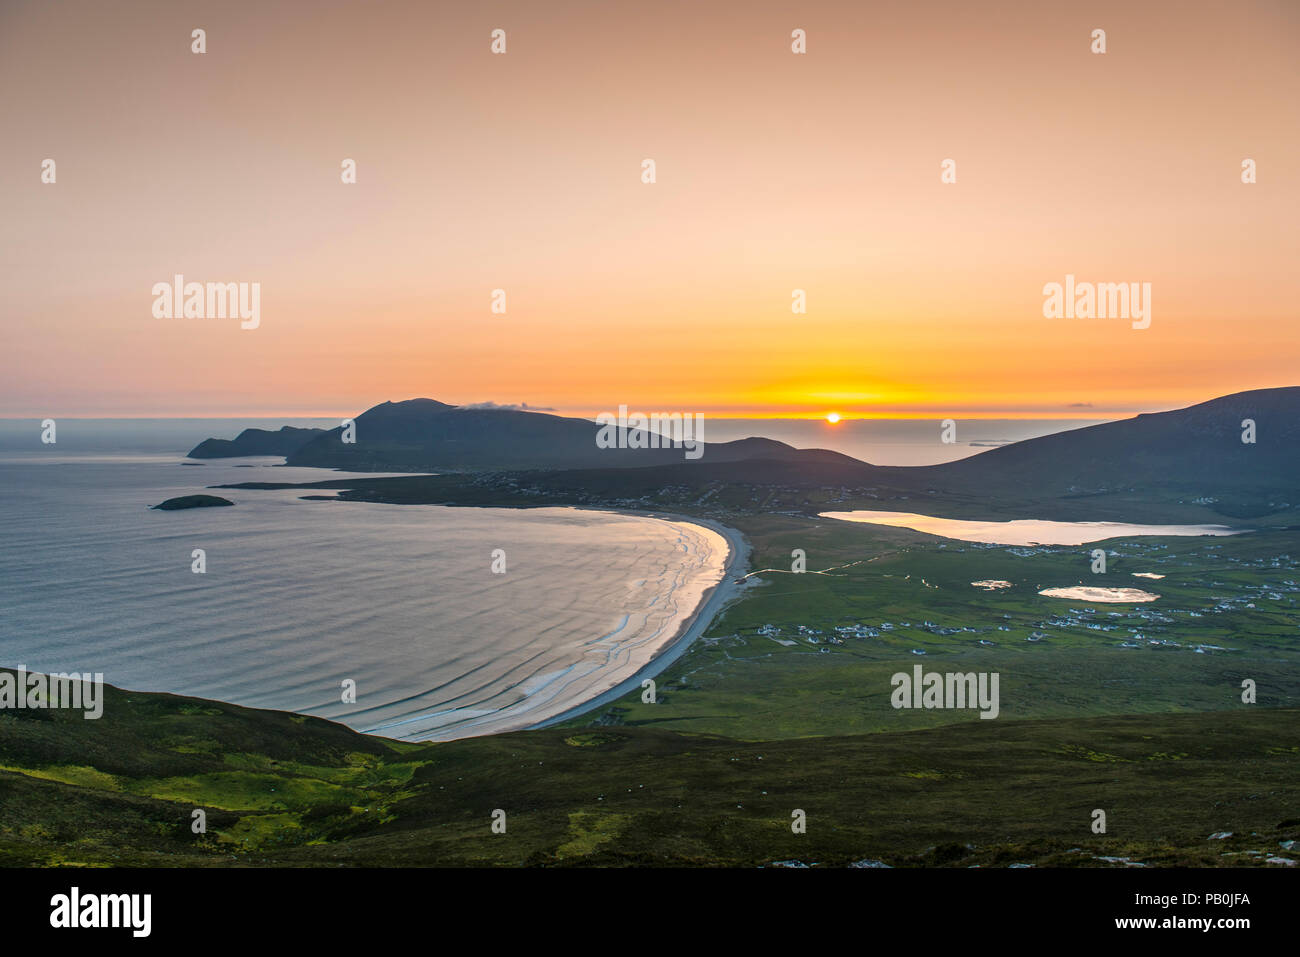 View of the Bay of Keel at sunset, Achill Island, County Mayo, Republic of Ireland - Stock Image